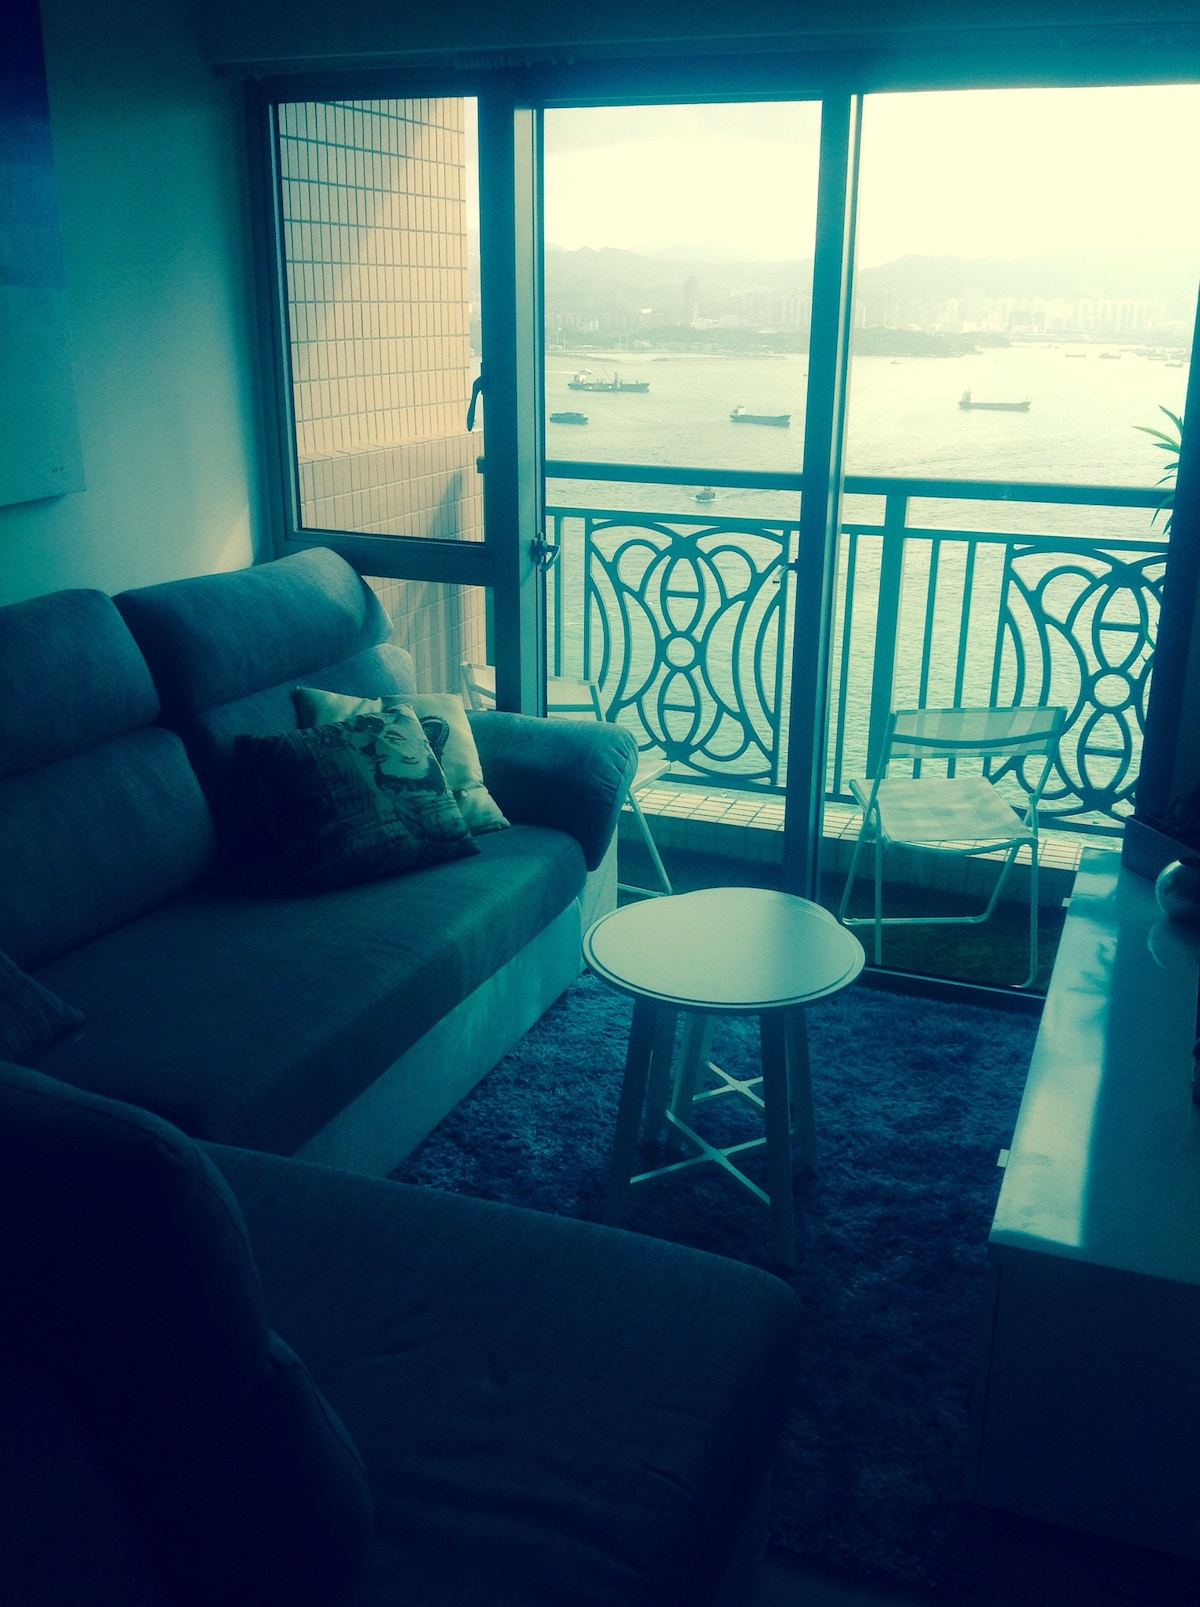 Two bedroom flat with stunning view